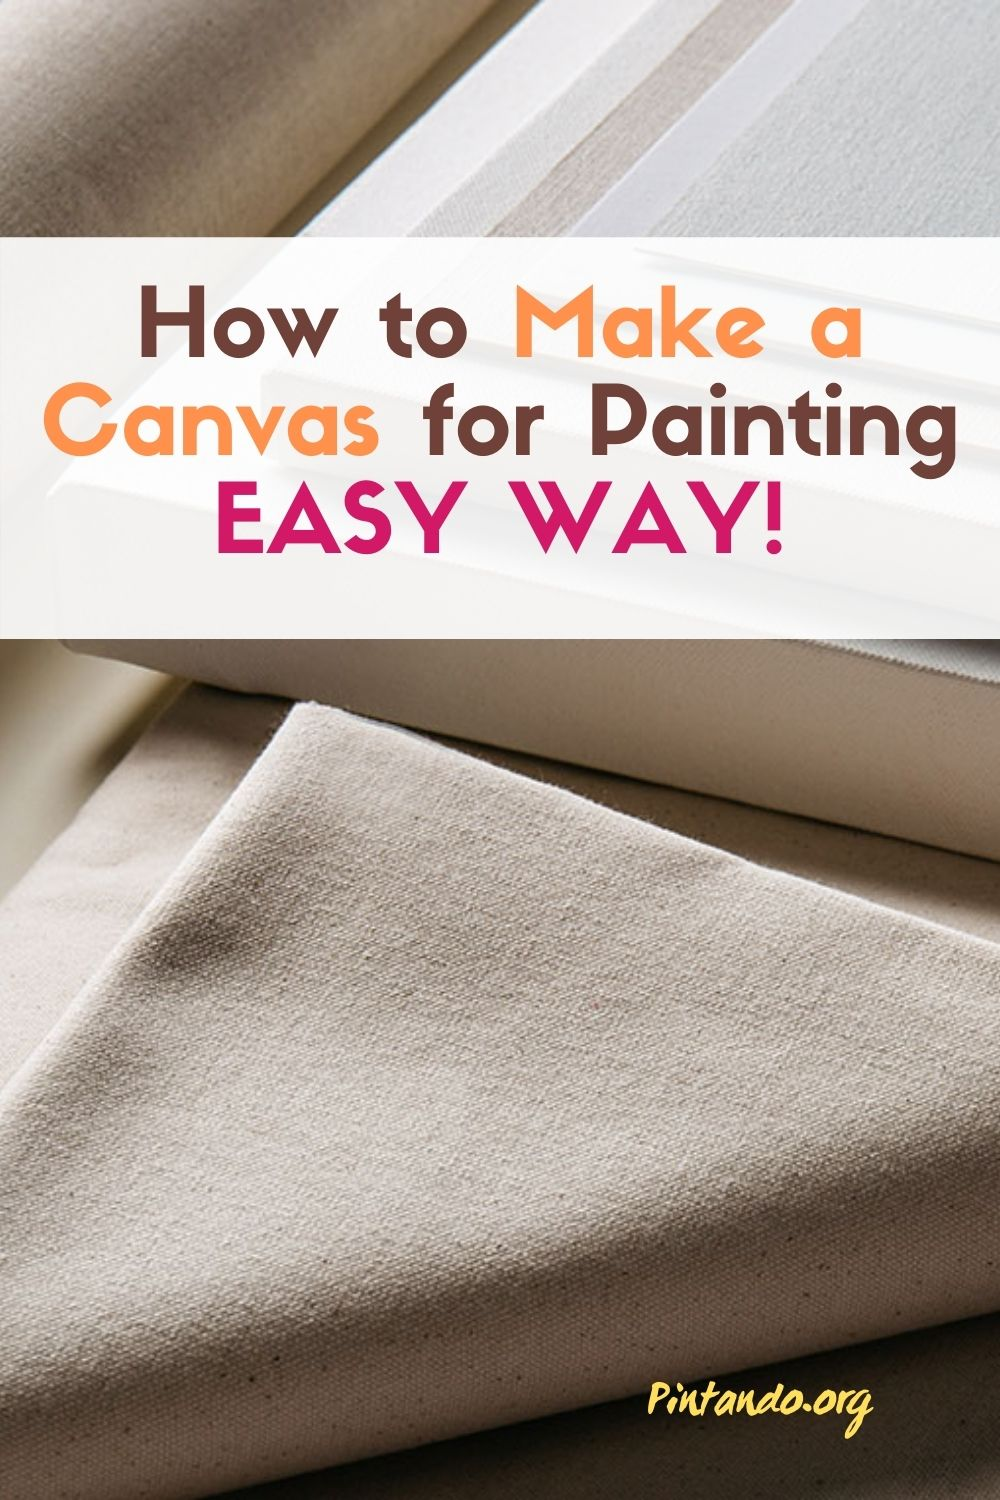 How to Make a Canvas for Painting EASY WAY!